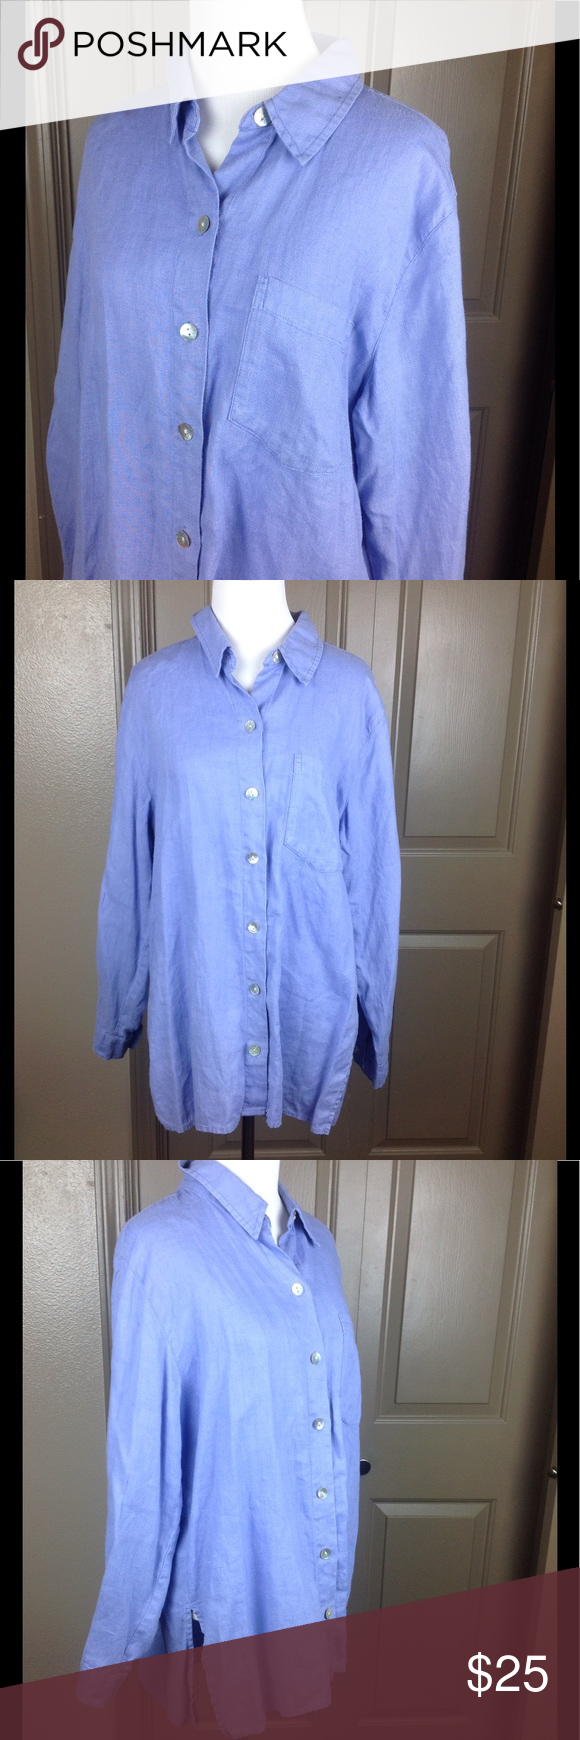 Chico's Tunic Top Button Down 1 Med Linen Lavender Great condition lavender purple 100% linen Button down with breast pocket & abalone buttons high/low 28 1/2 inch front length 30 1/2 in back 21 inches across bust Chico's Tops Blouses